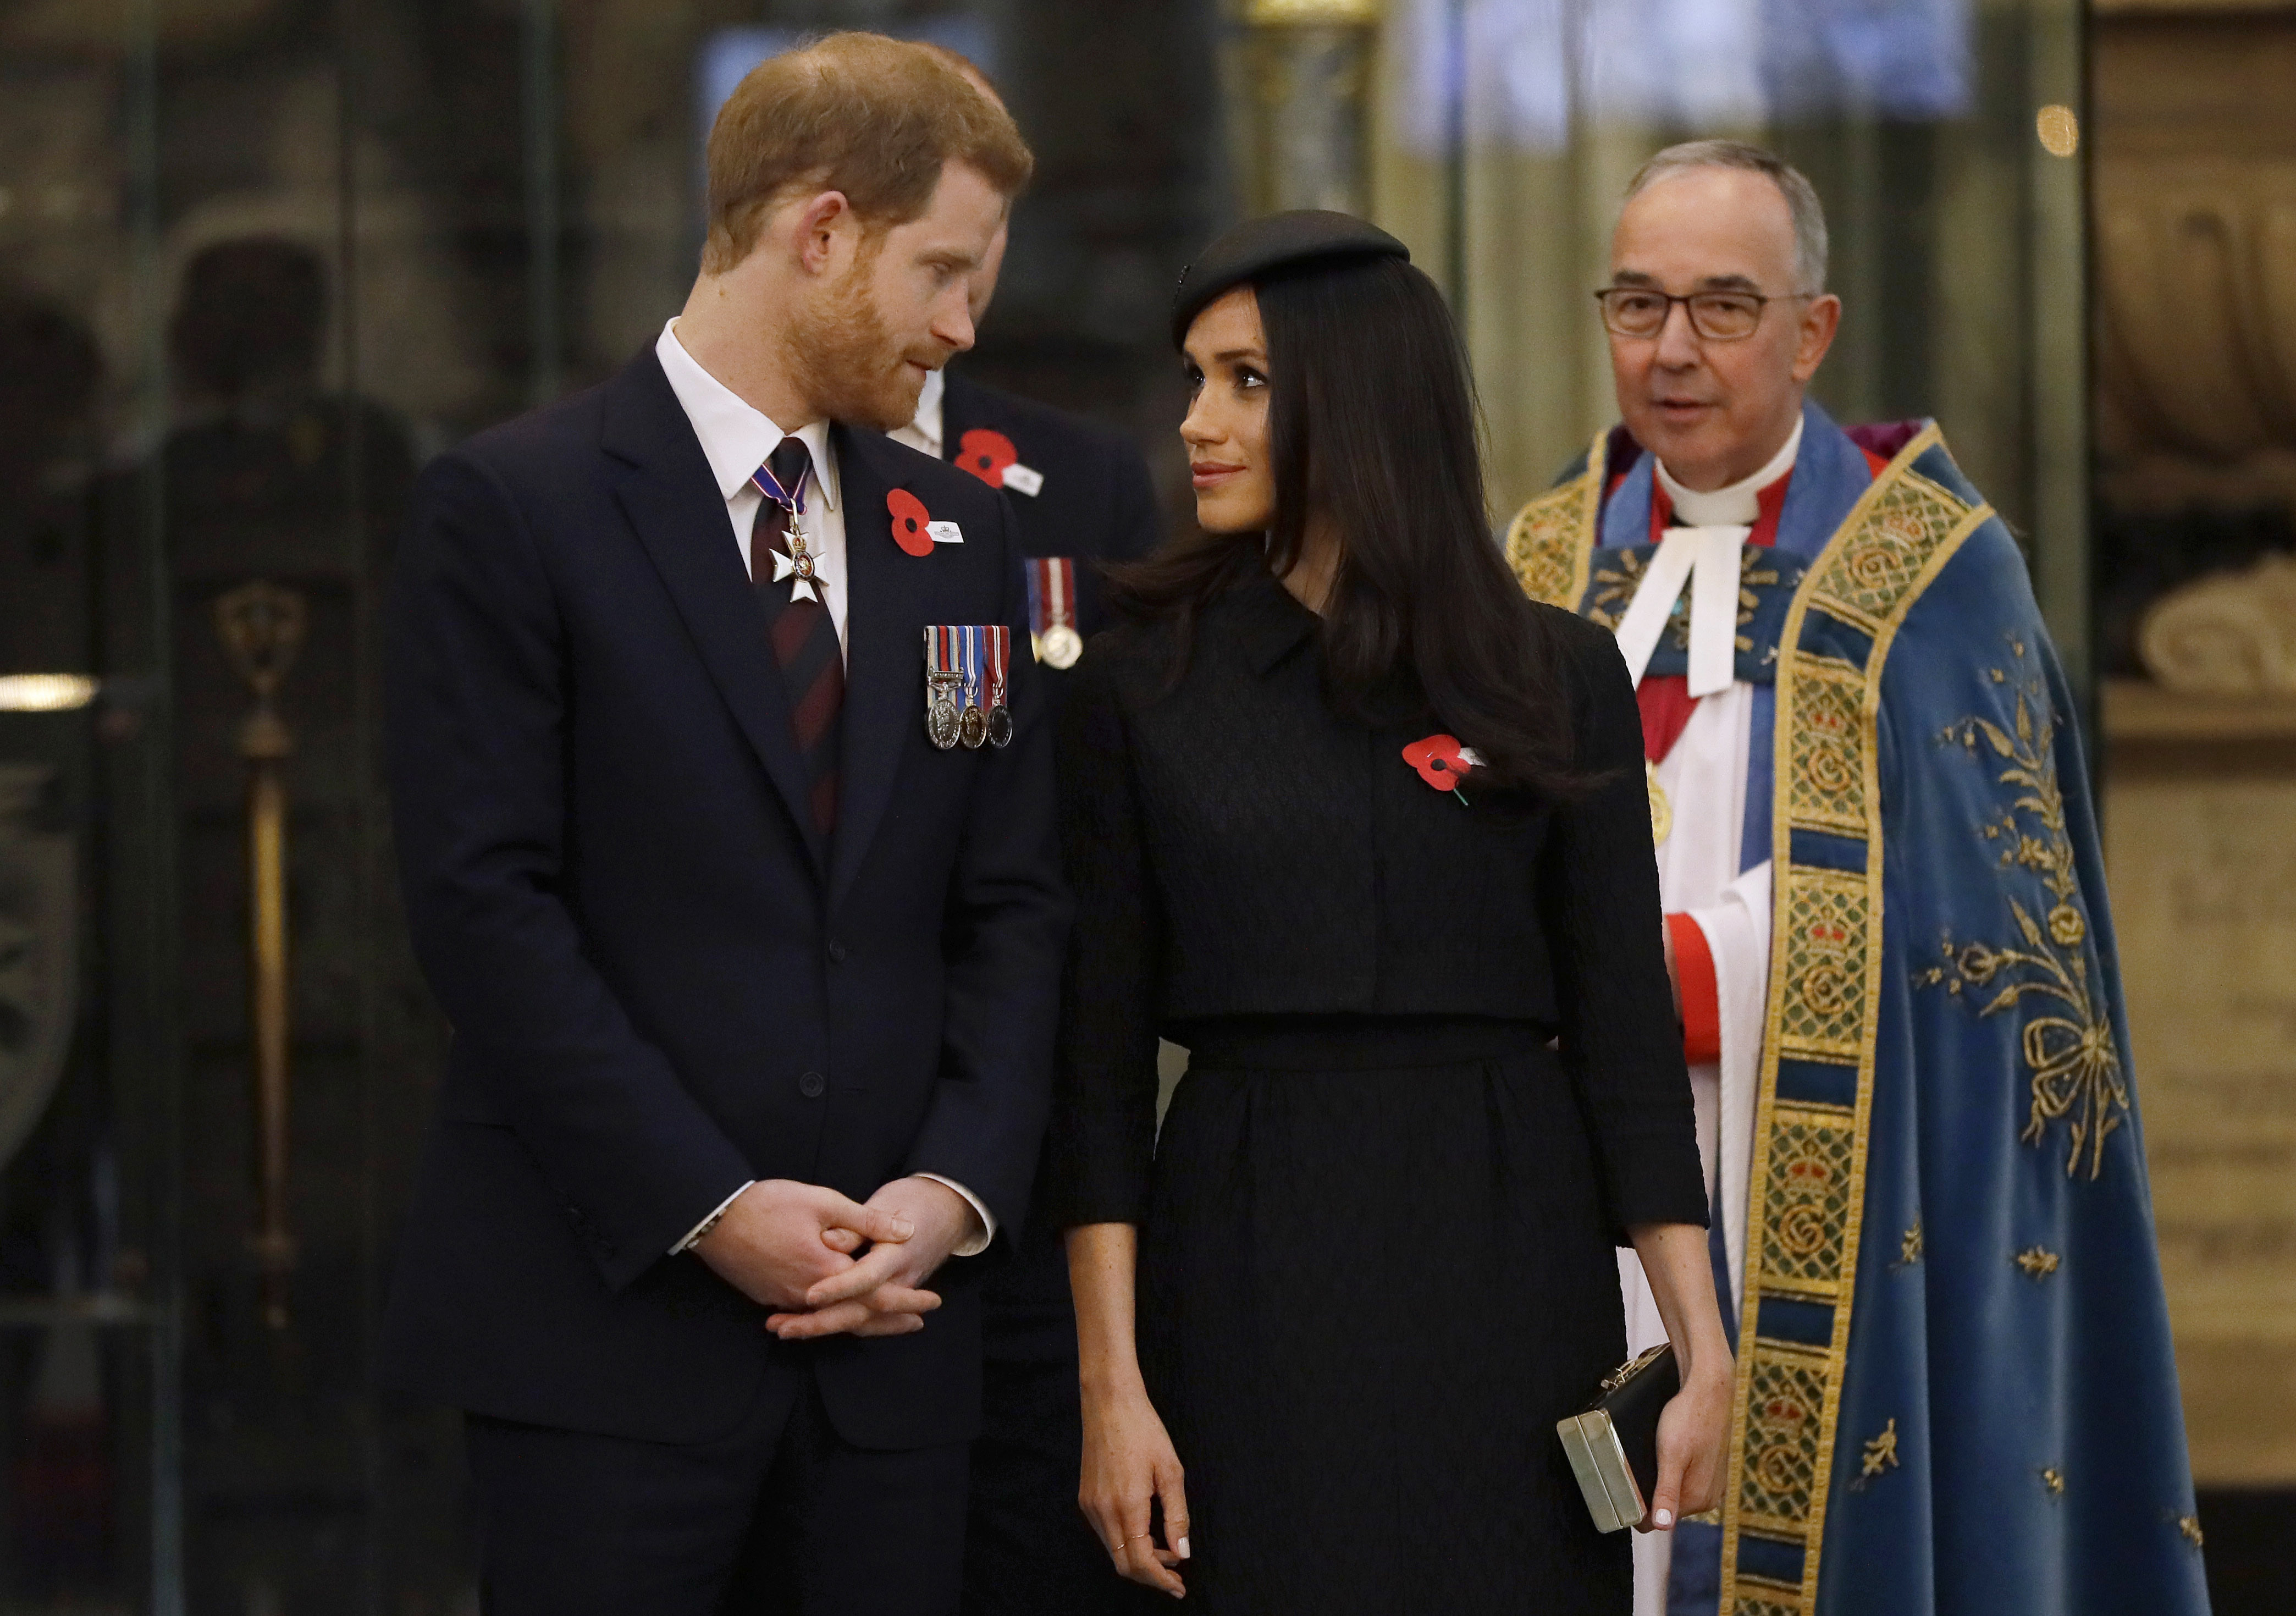 Prince Harry and Meghan Markle look at each other with a priest in the background.